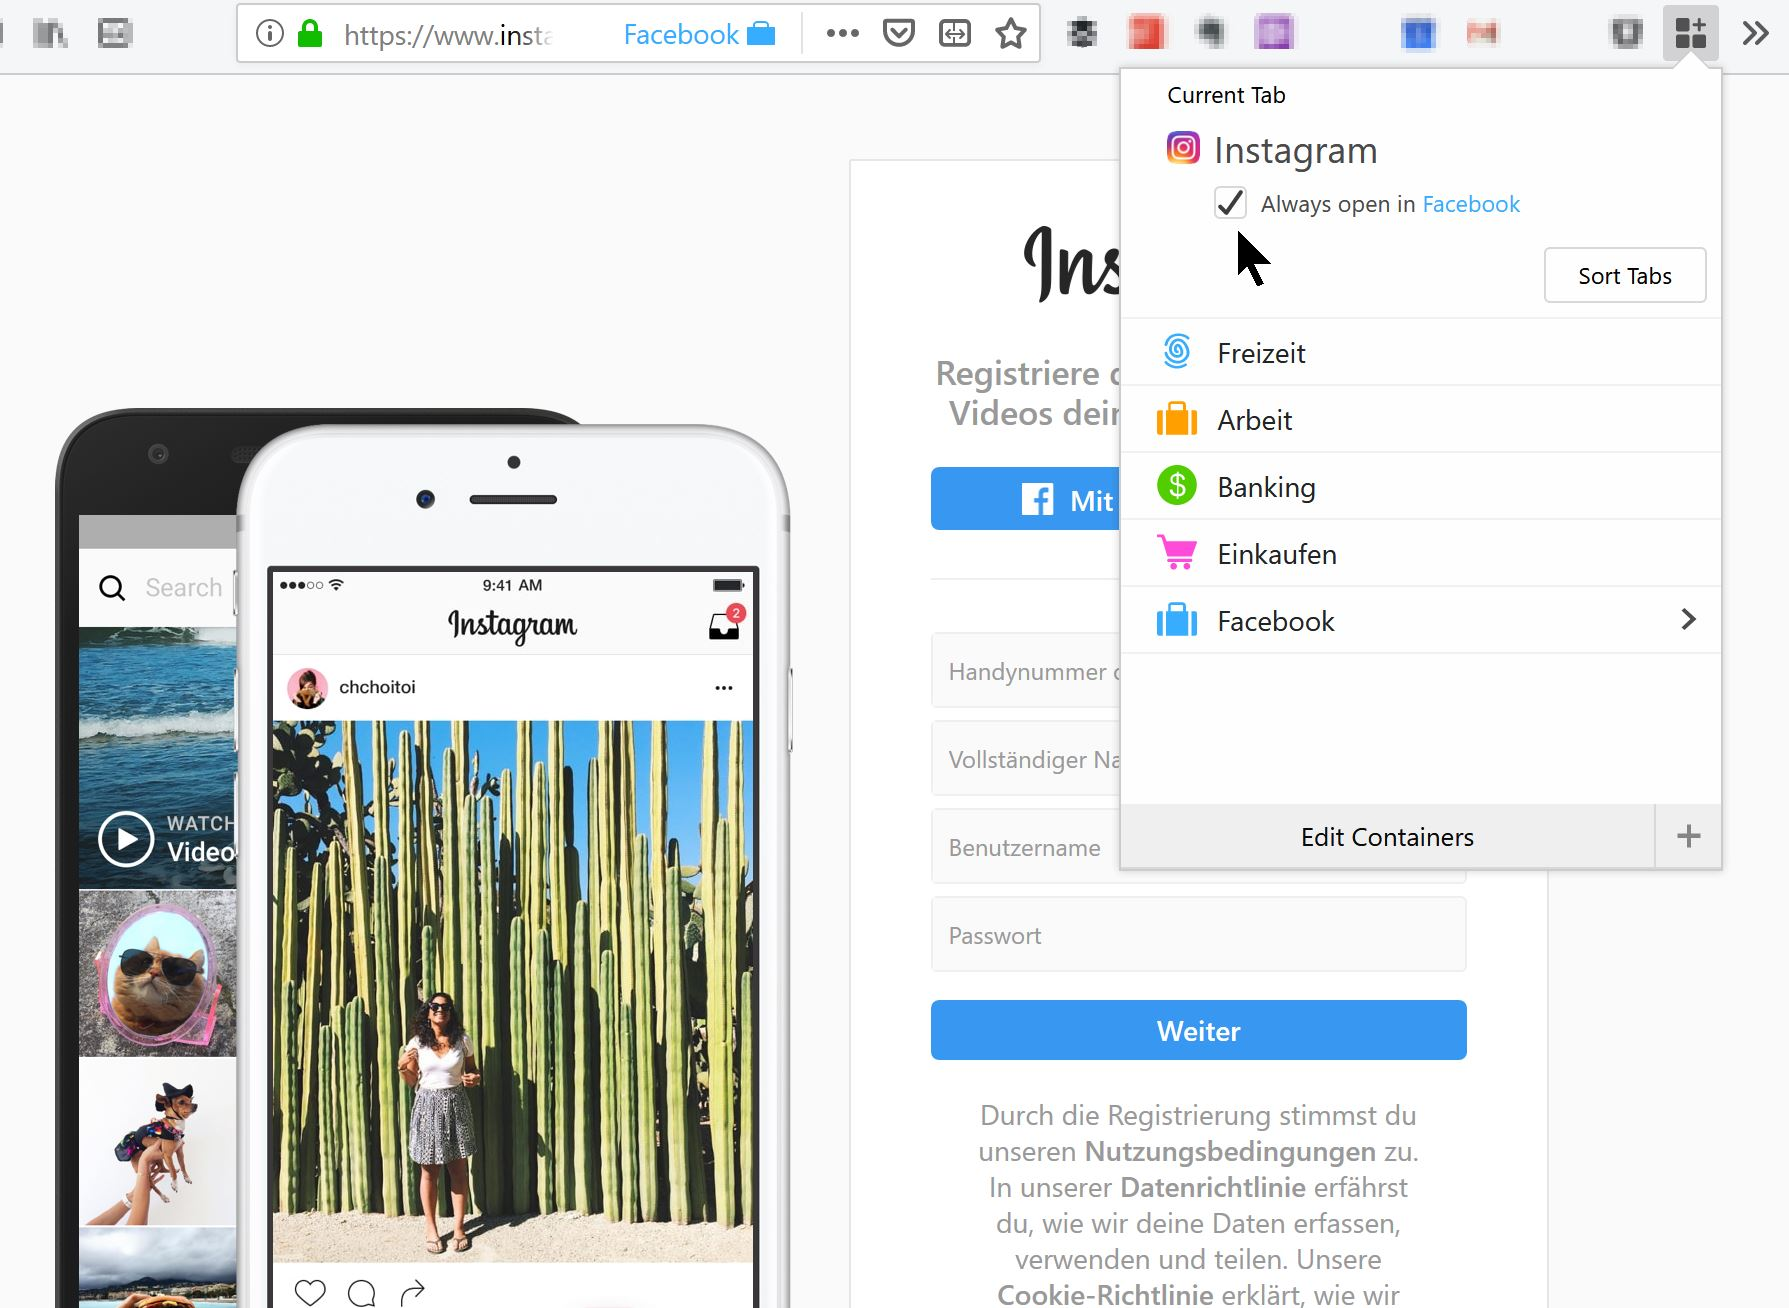 Multi-Account Containers: Instagramm immer in Facebook-Umgebung öffnen